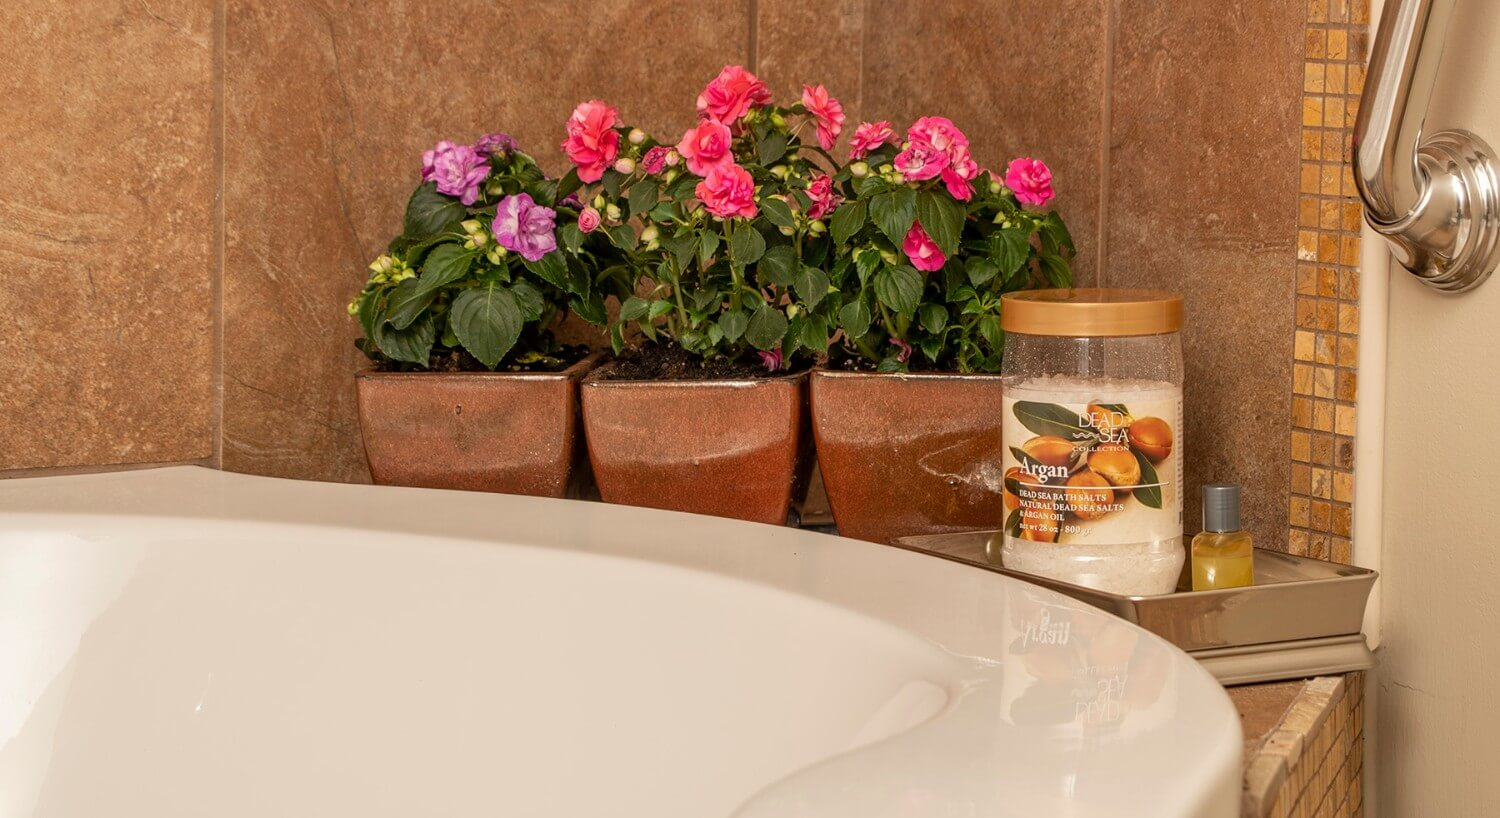 Mini-roses in copper pots sit on the ledge of a soaking tub.